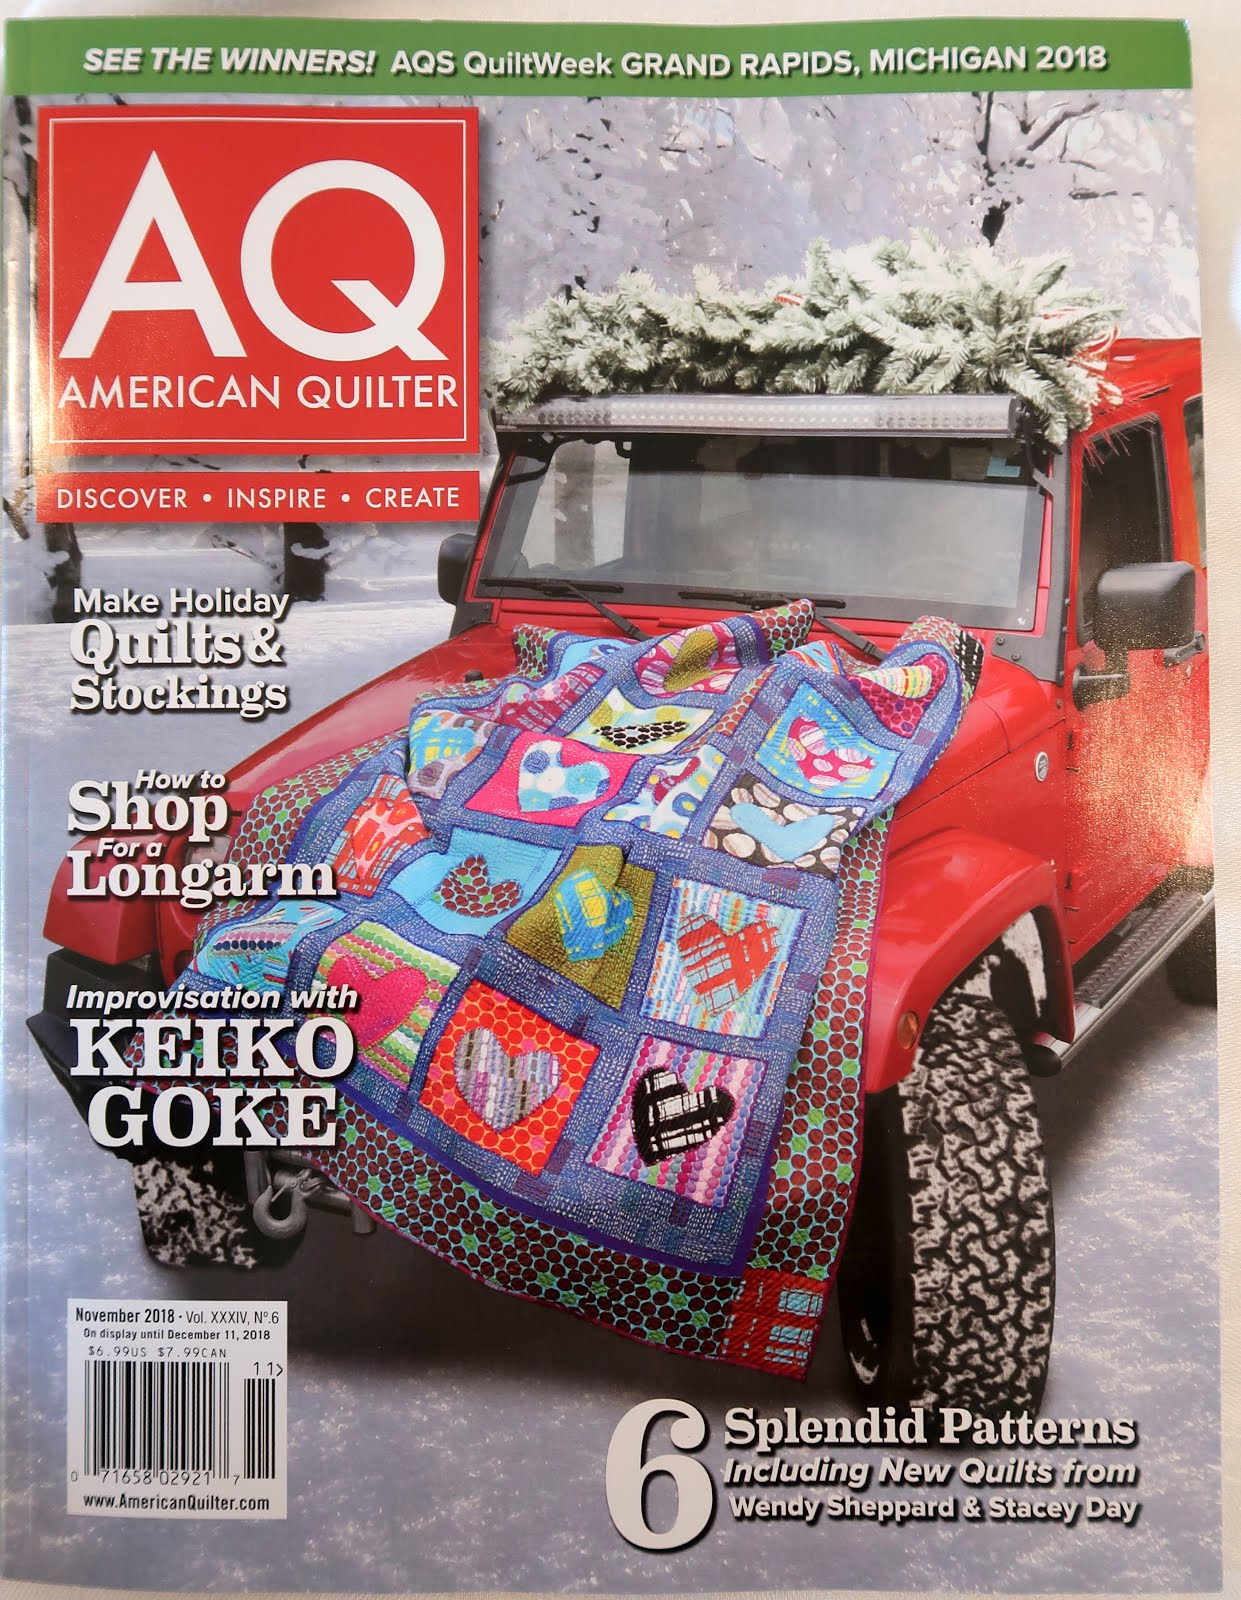 New! American Quilter magazine - November 2018 (click!)